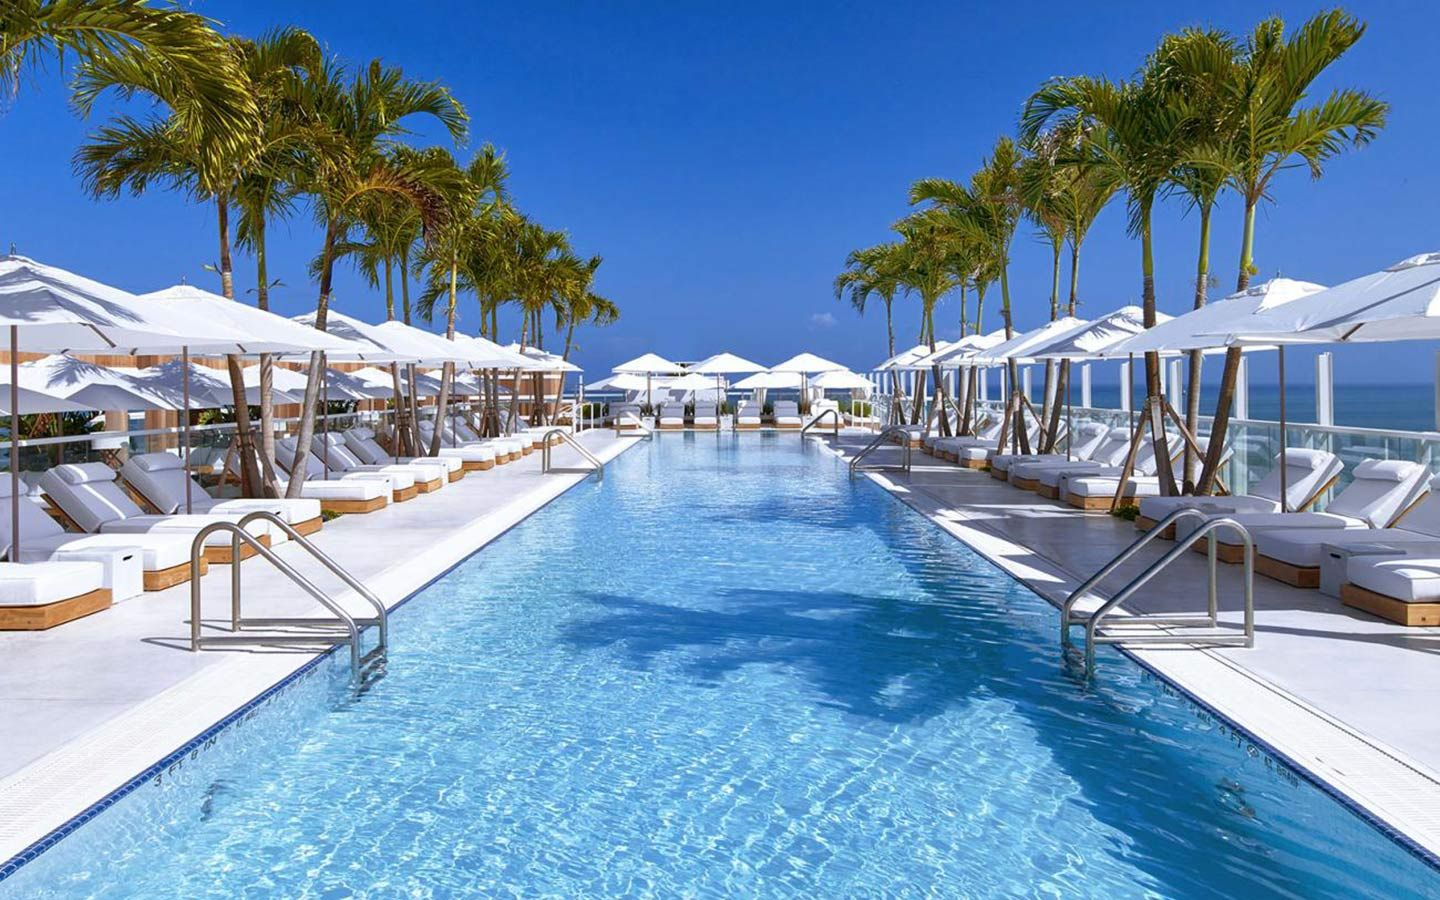 Hotels with Amazing pools in Miami Beach